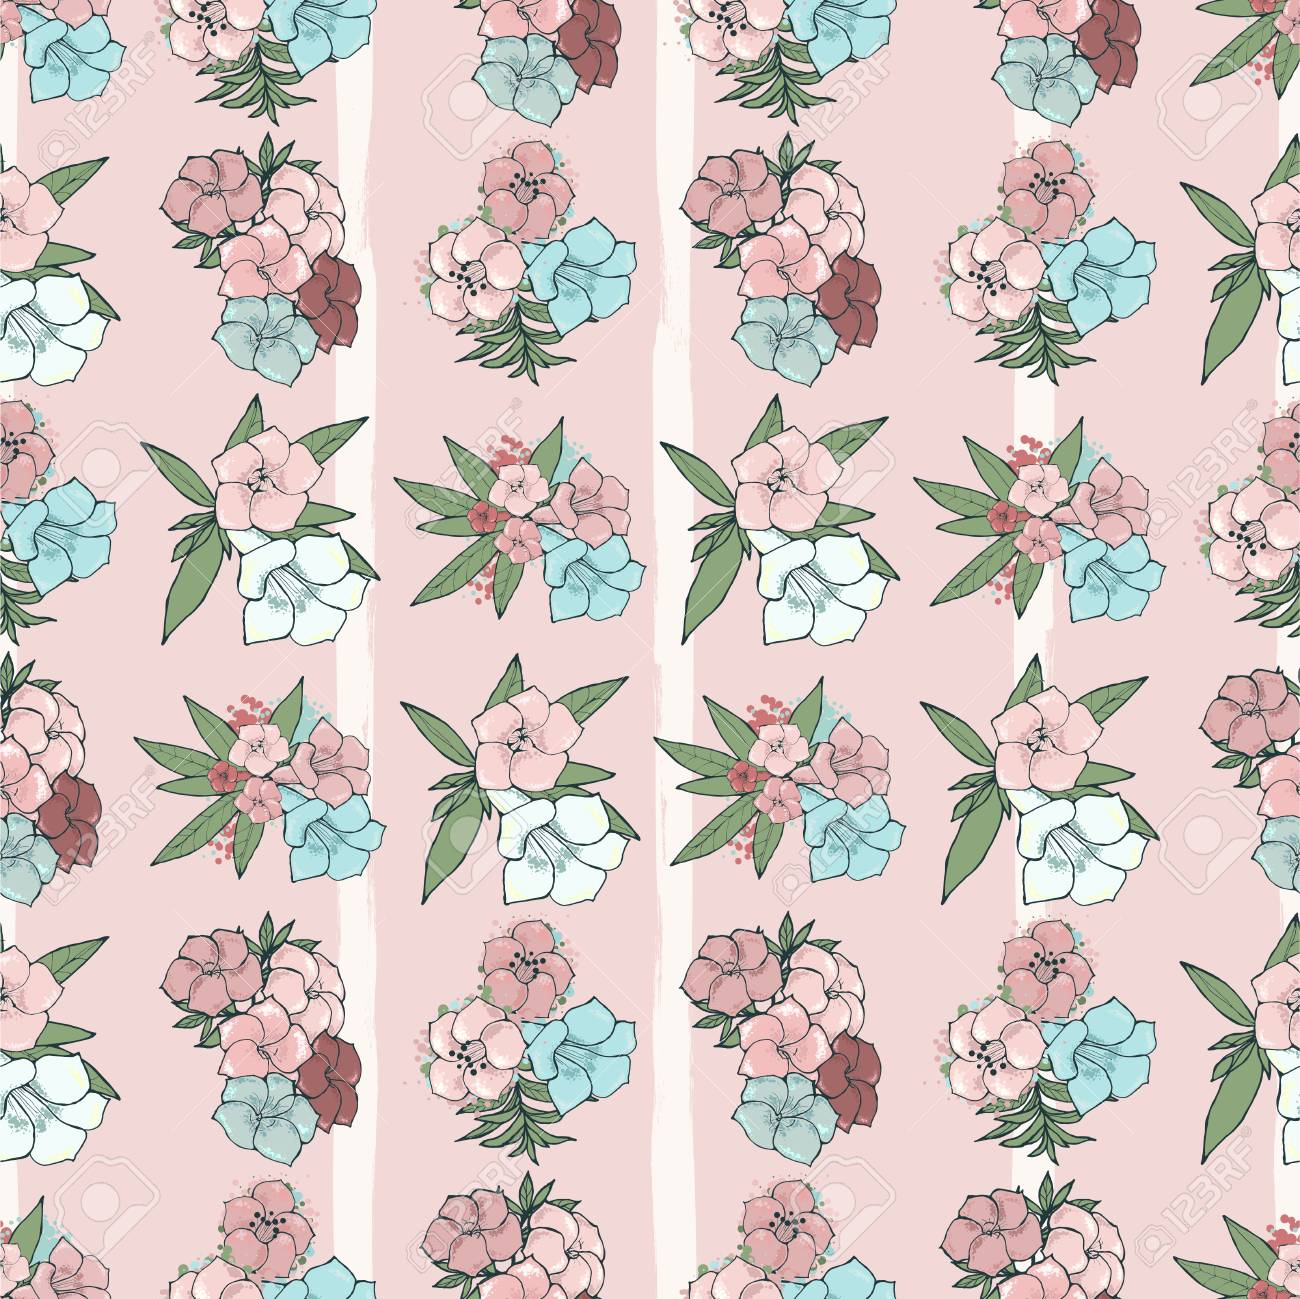 Vector seamless pattern exotic pink and blue flowers on striped illustration vector seamless pattern exotic pink and blue flowers on striped background floral wallpaper hand drawn illustration izmirmasajfo